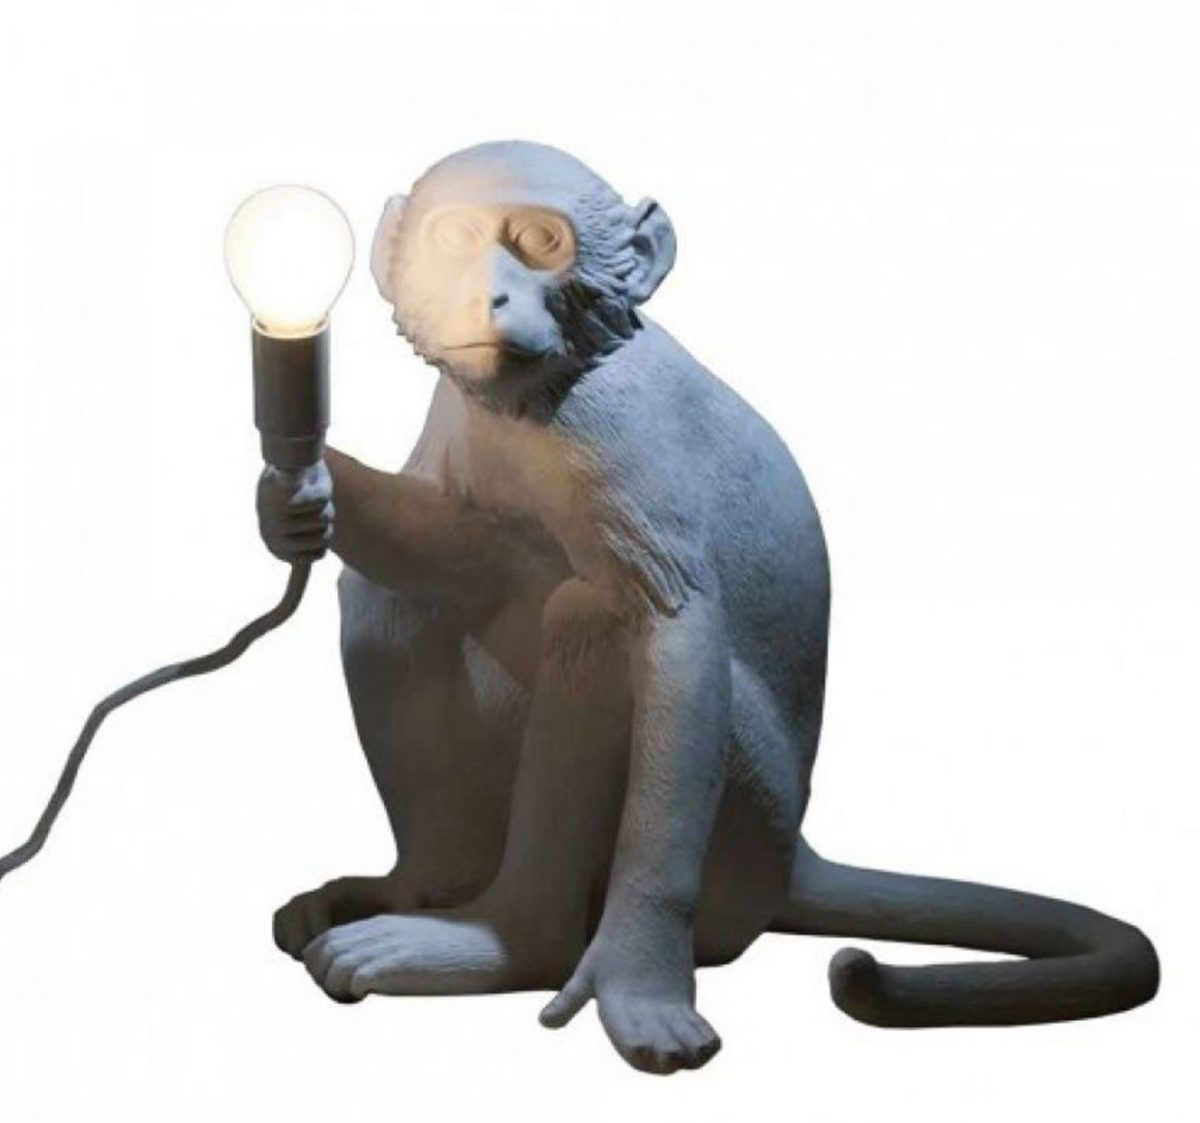 5. Sitting Monkey Lamp, M.R. Malerba for Seletti